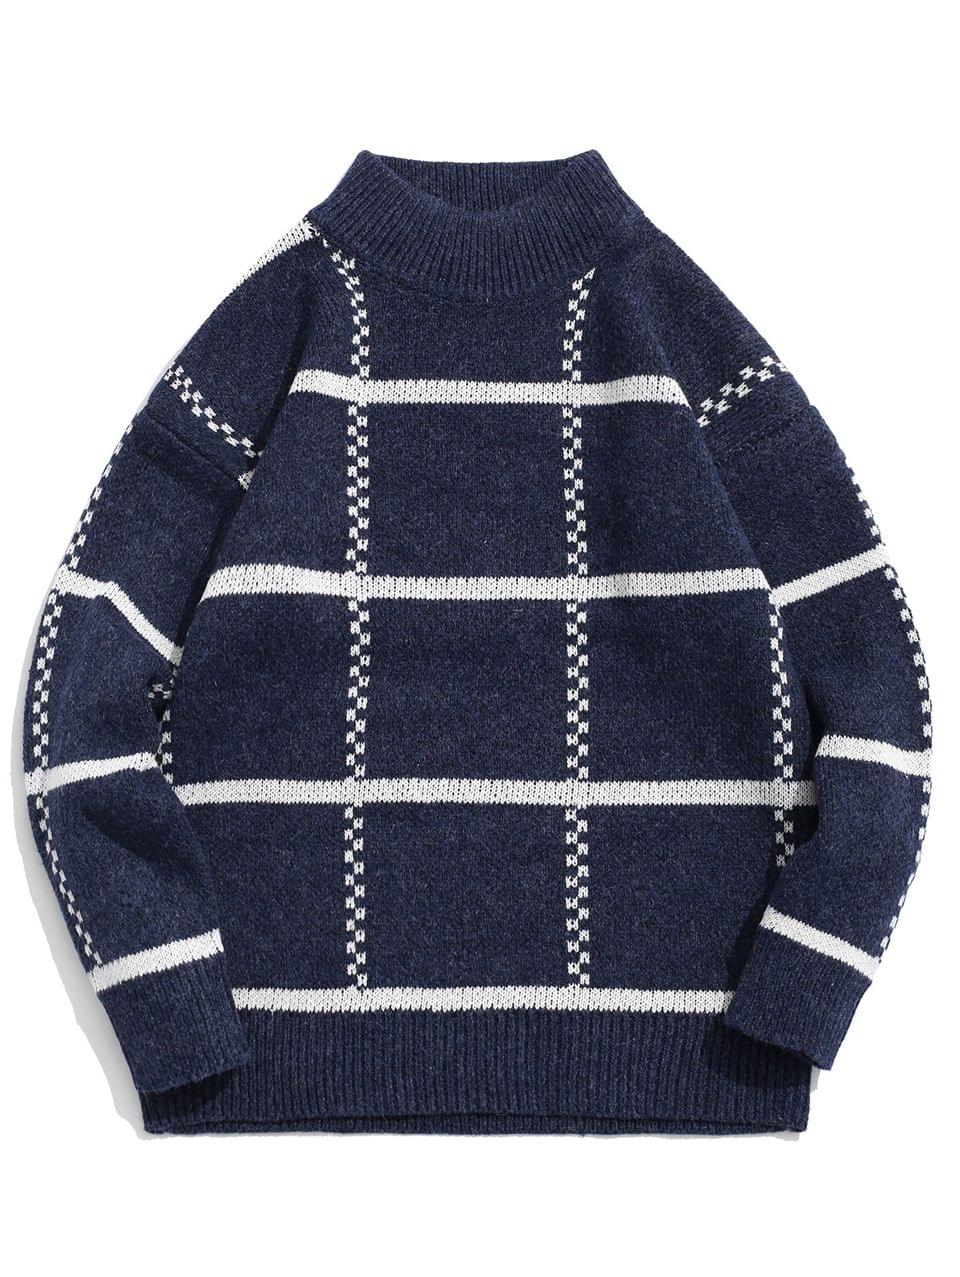 Men's High Neck Pullover Striped Sweater - Blue S